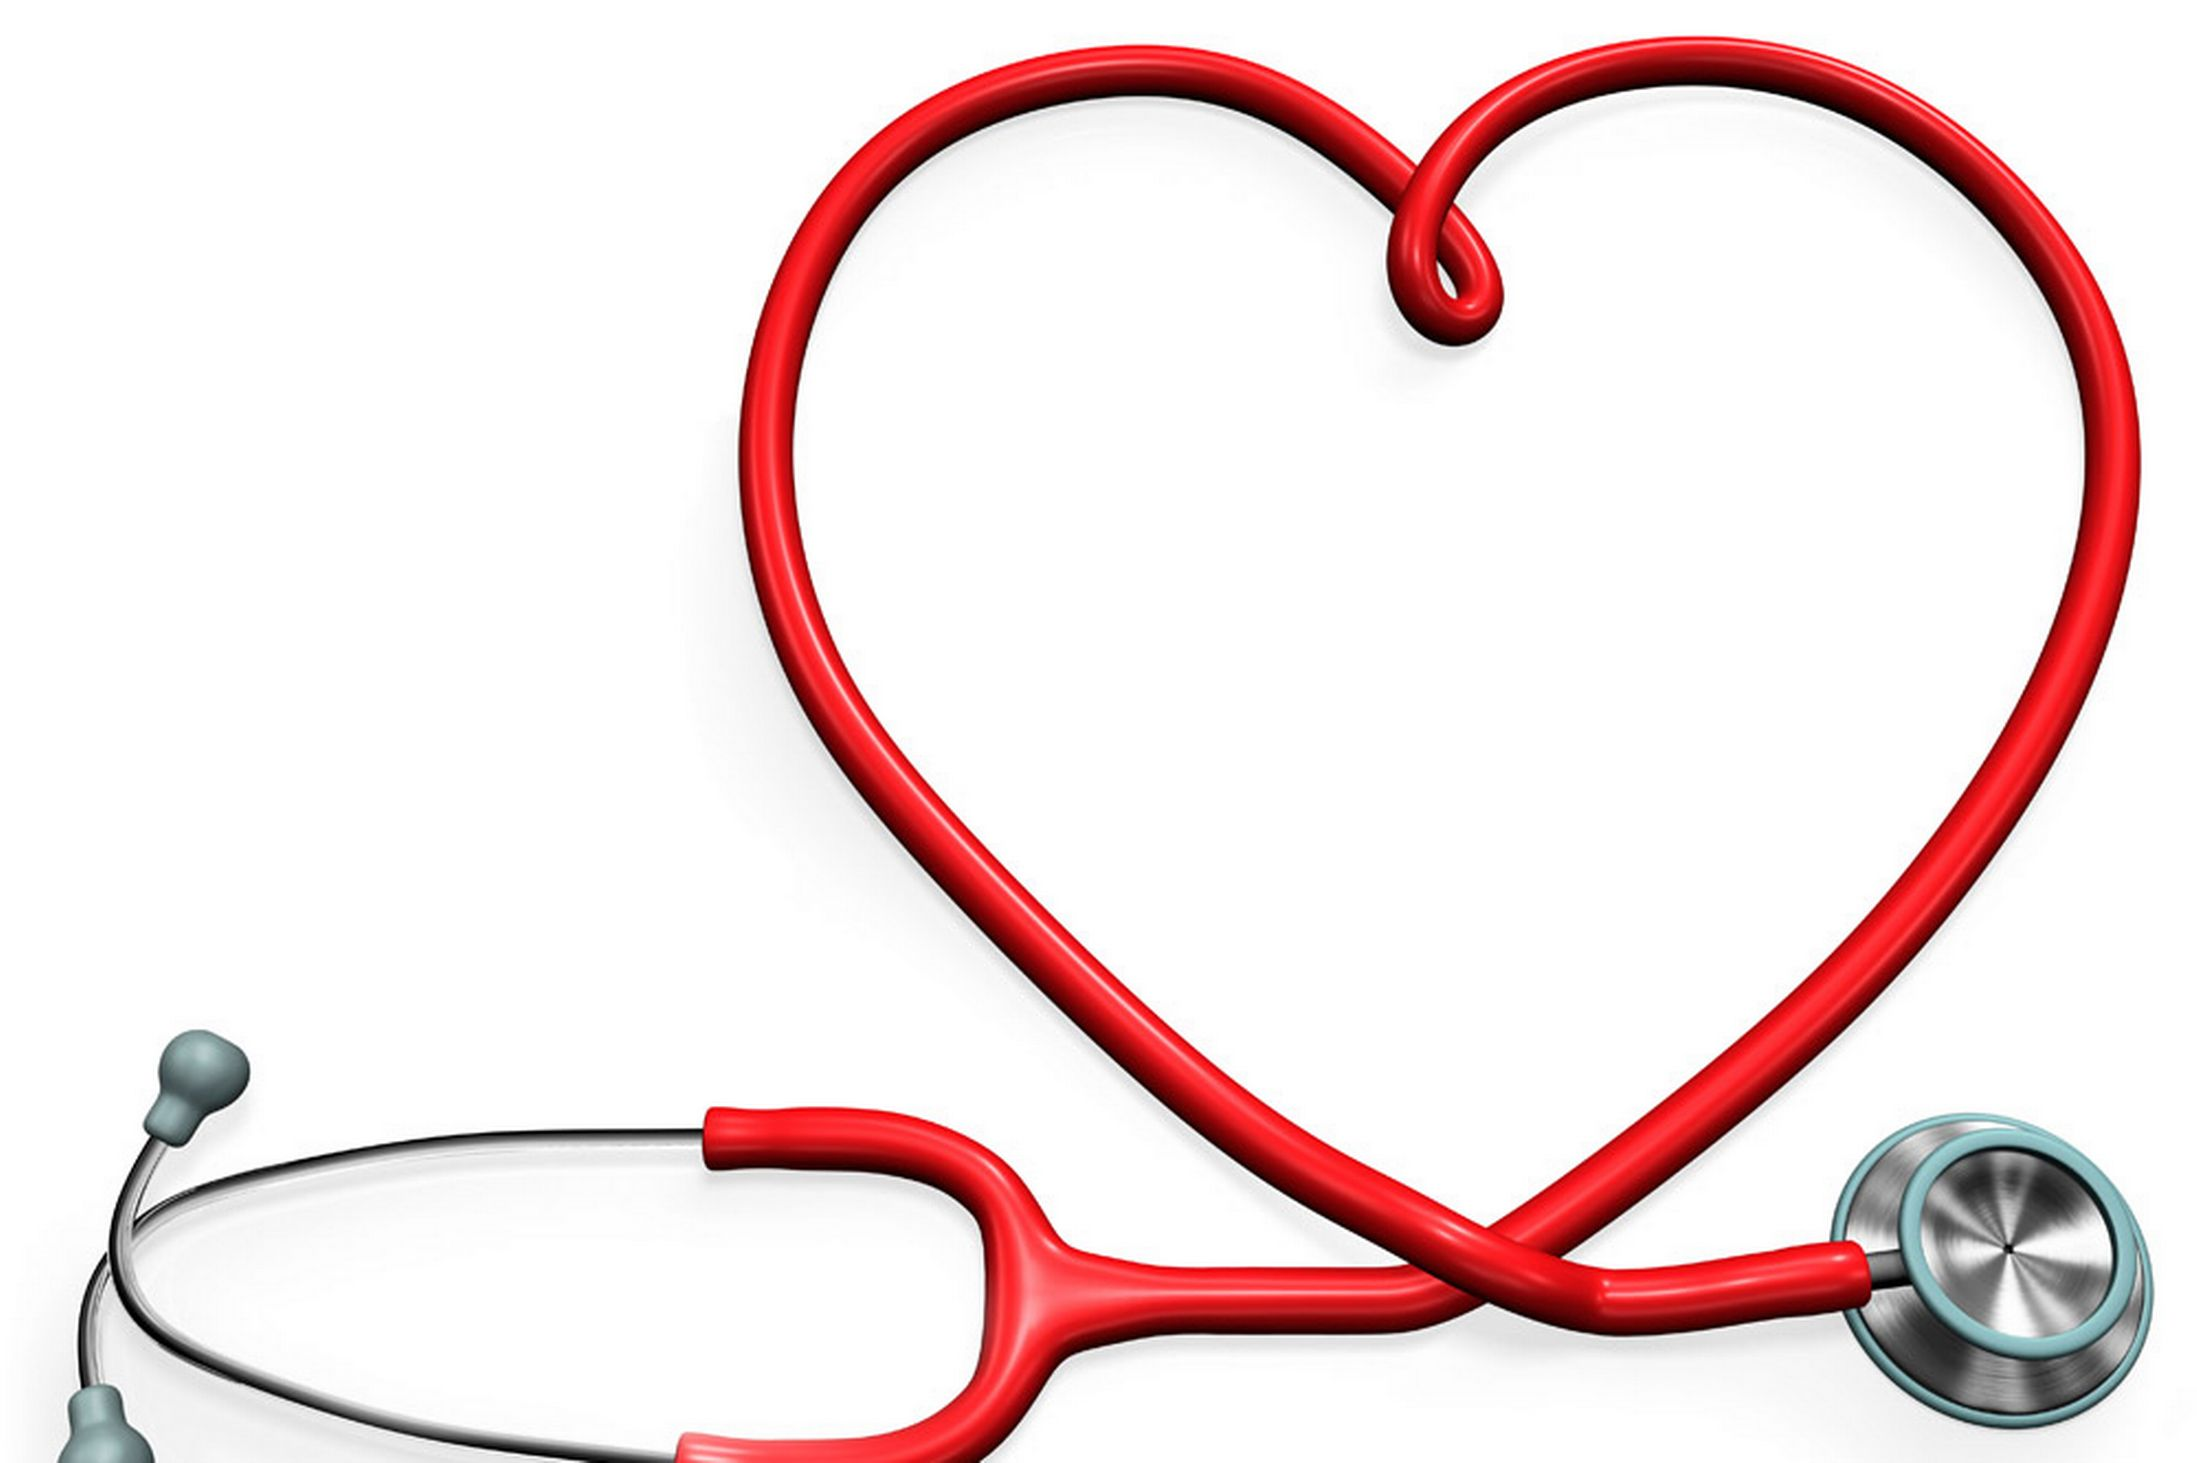 Clip Art Stethoscope Clip Art heart with stethoscope clipart kid best